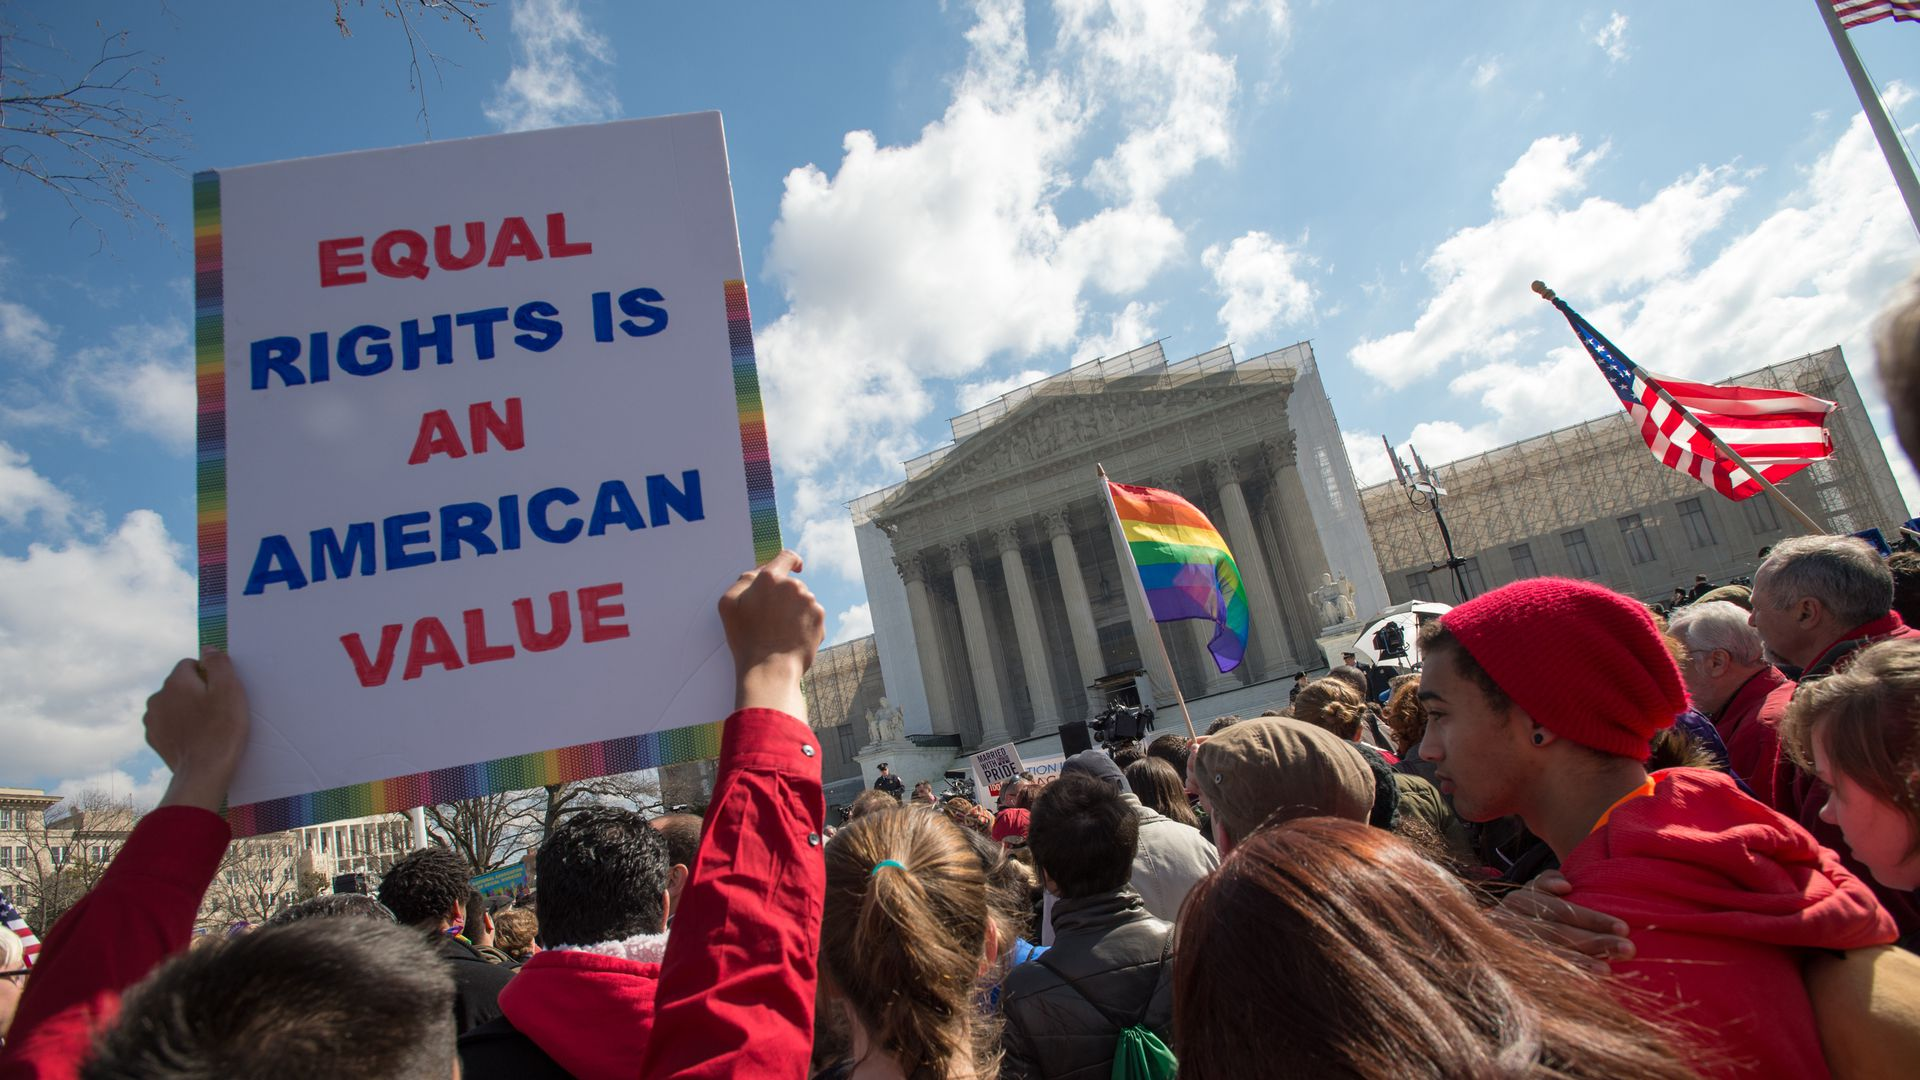 Supporters of LGBTQ rights rally outside the U.S. Supreme Court